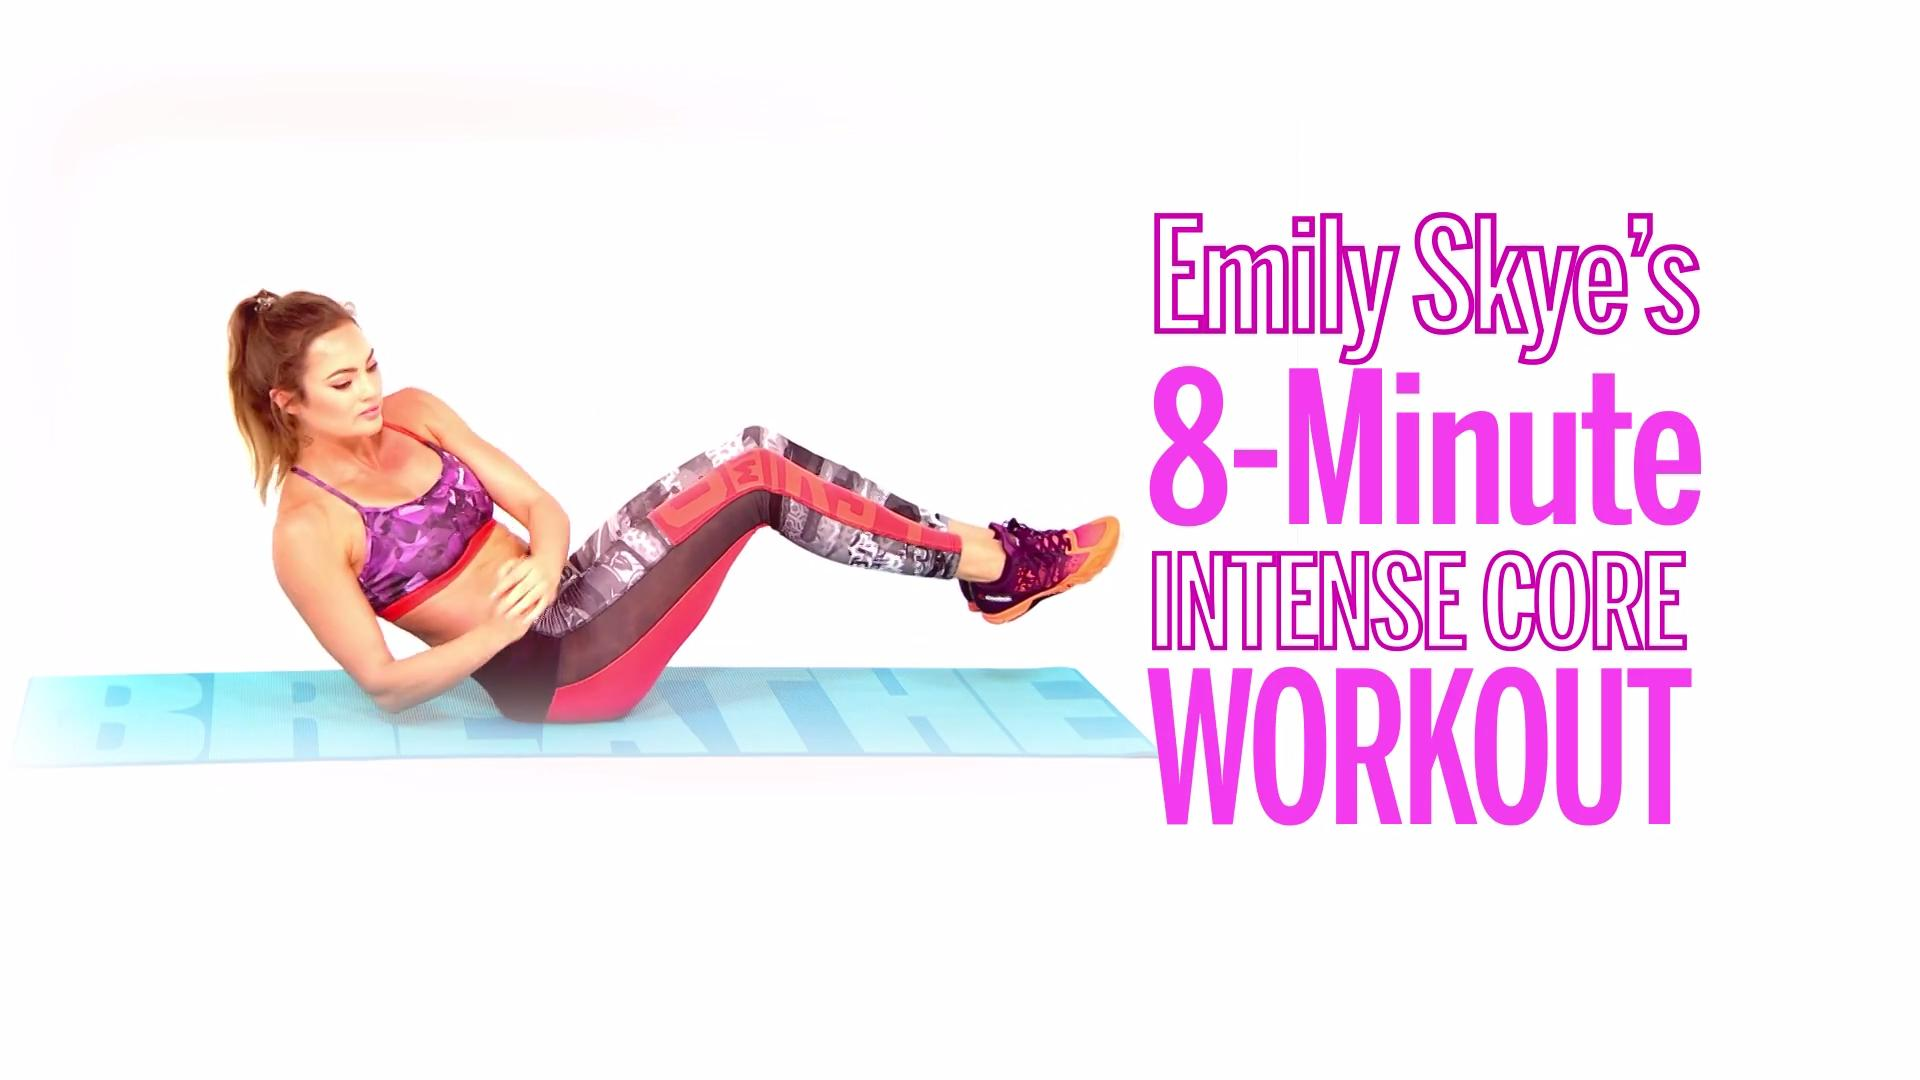 Transform Your Abs With Emily Skye's 8-Minute Core Circuit